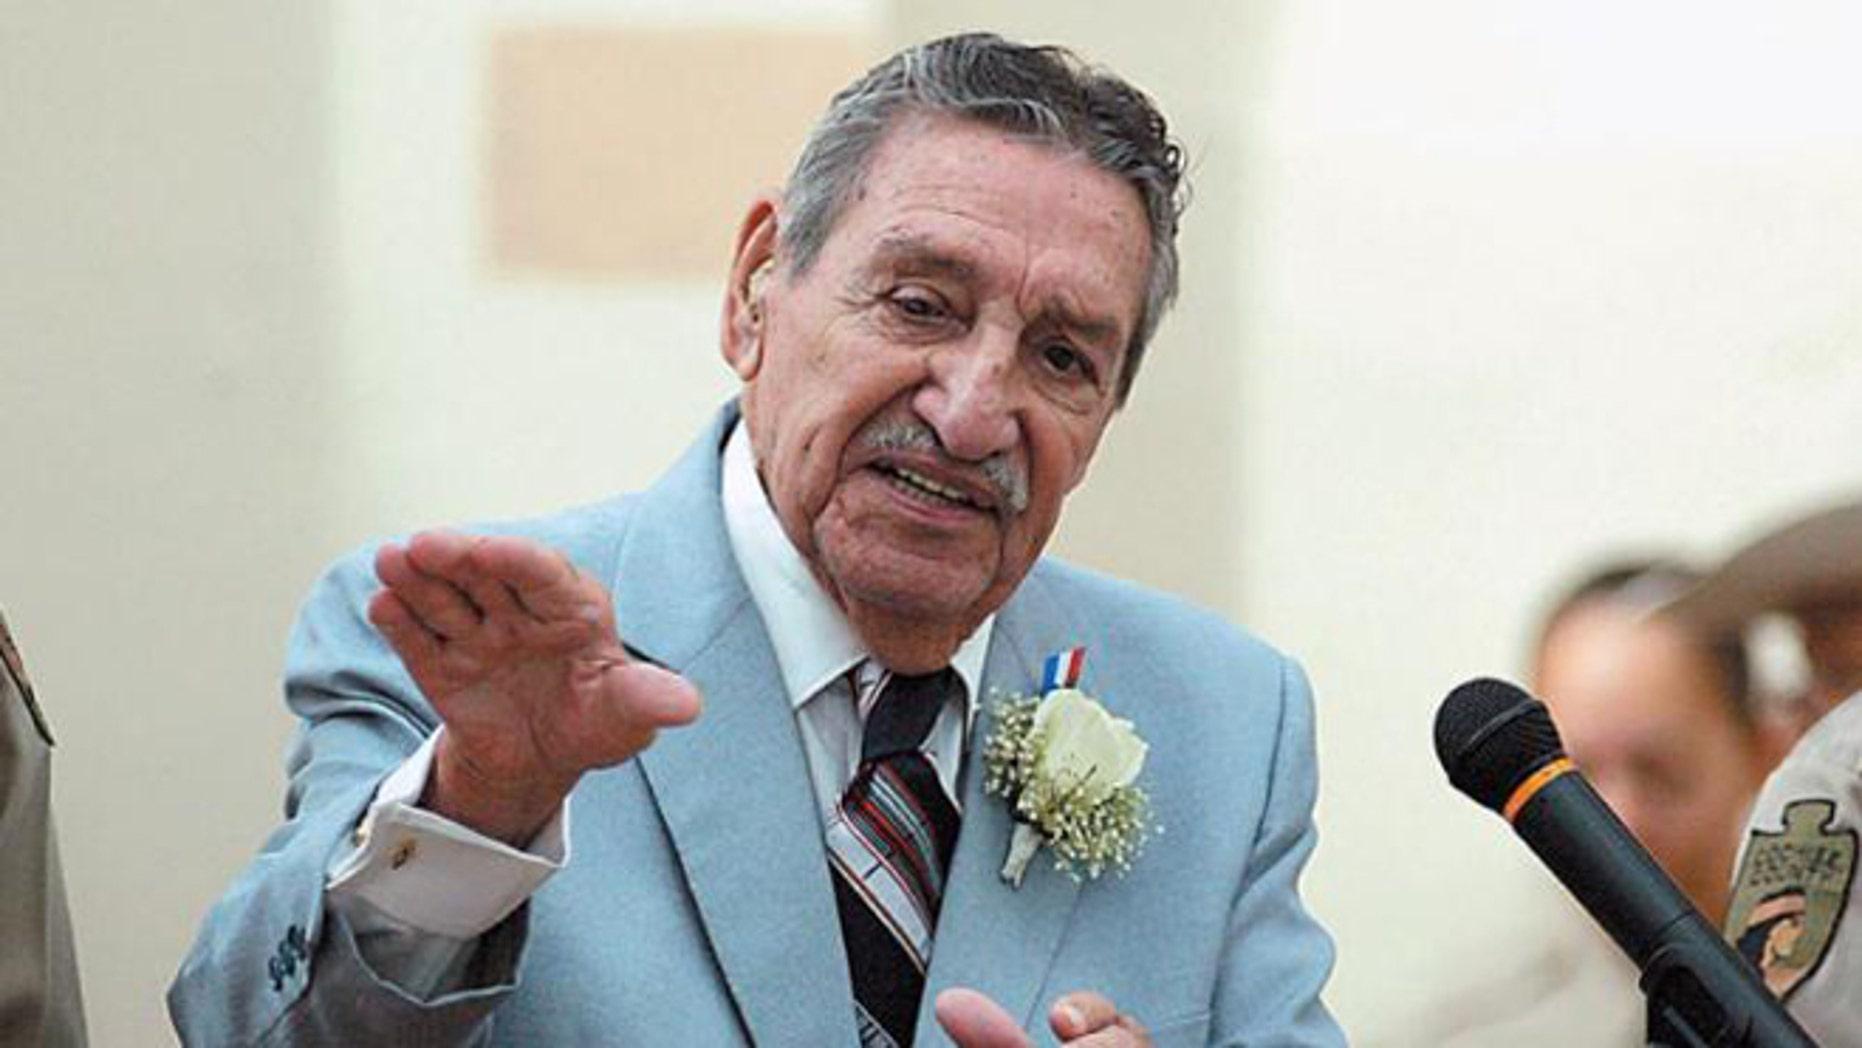 Raul Hector Castro in a 2006 file photo.